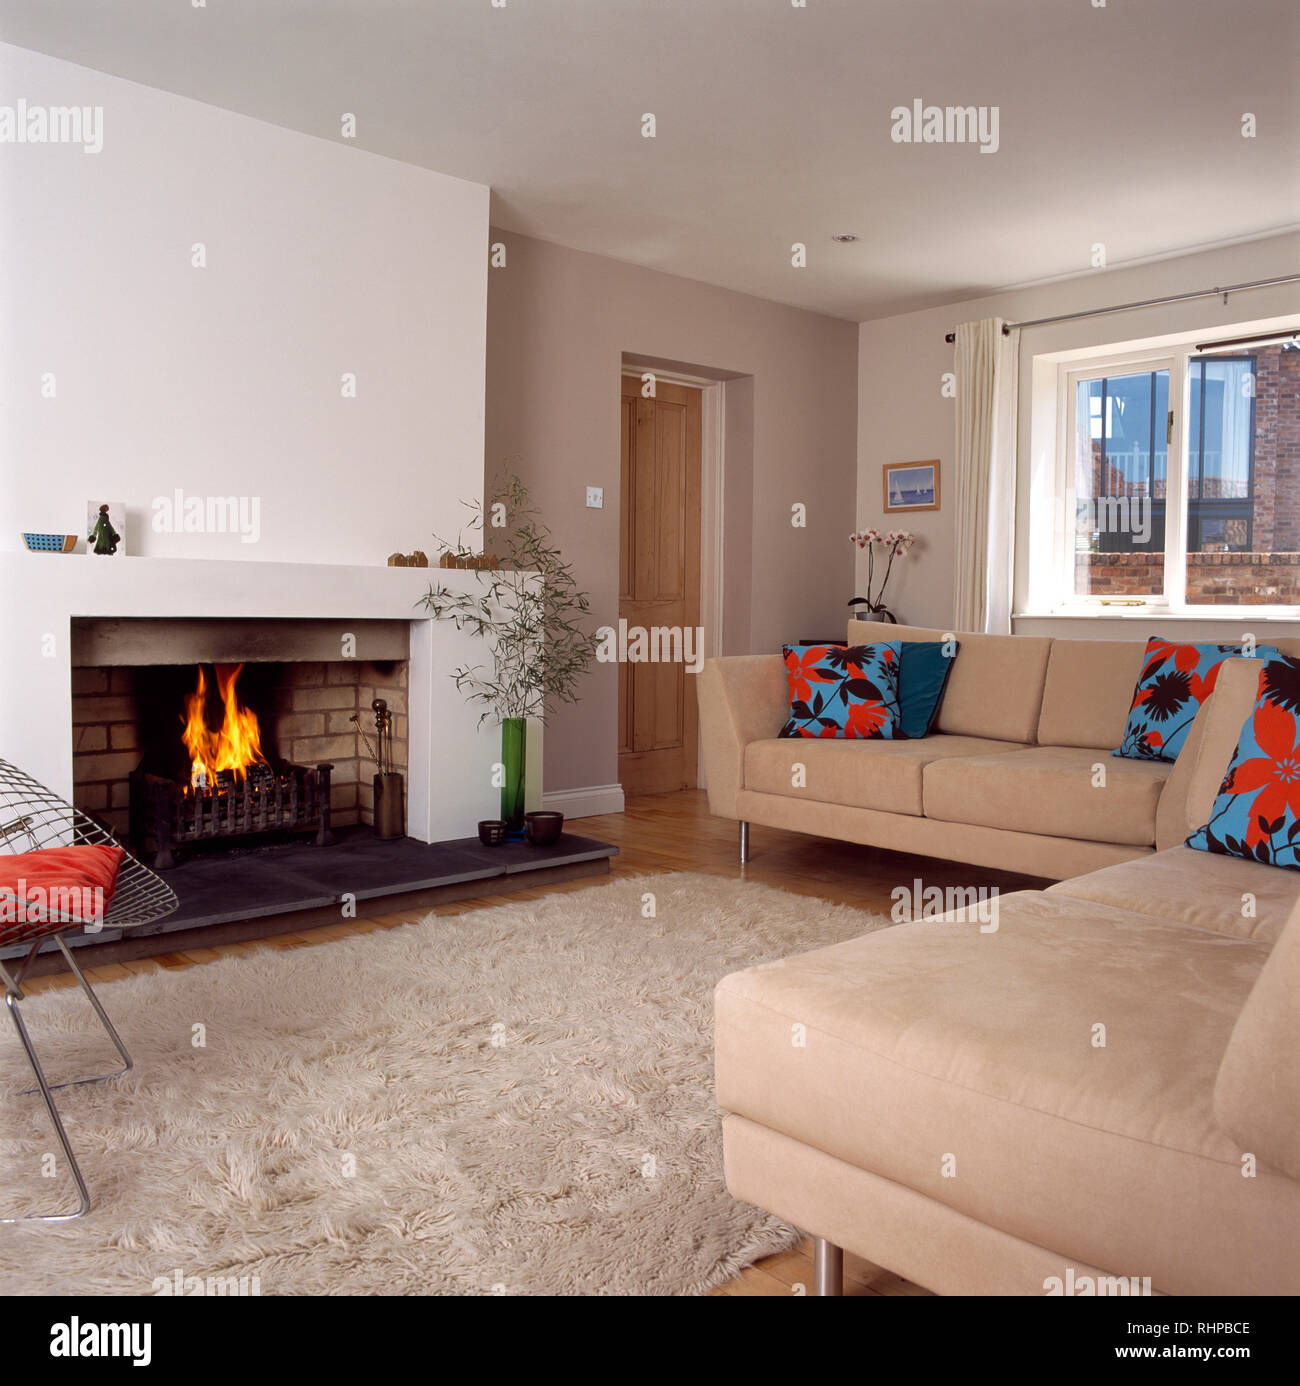 Shag Pile Rug And Beige Sofas In Modern Living Room Stock Photo Alamy